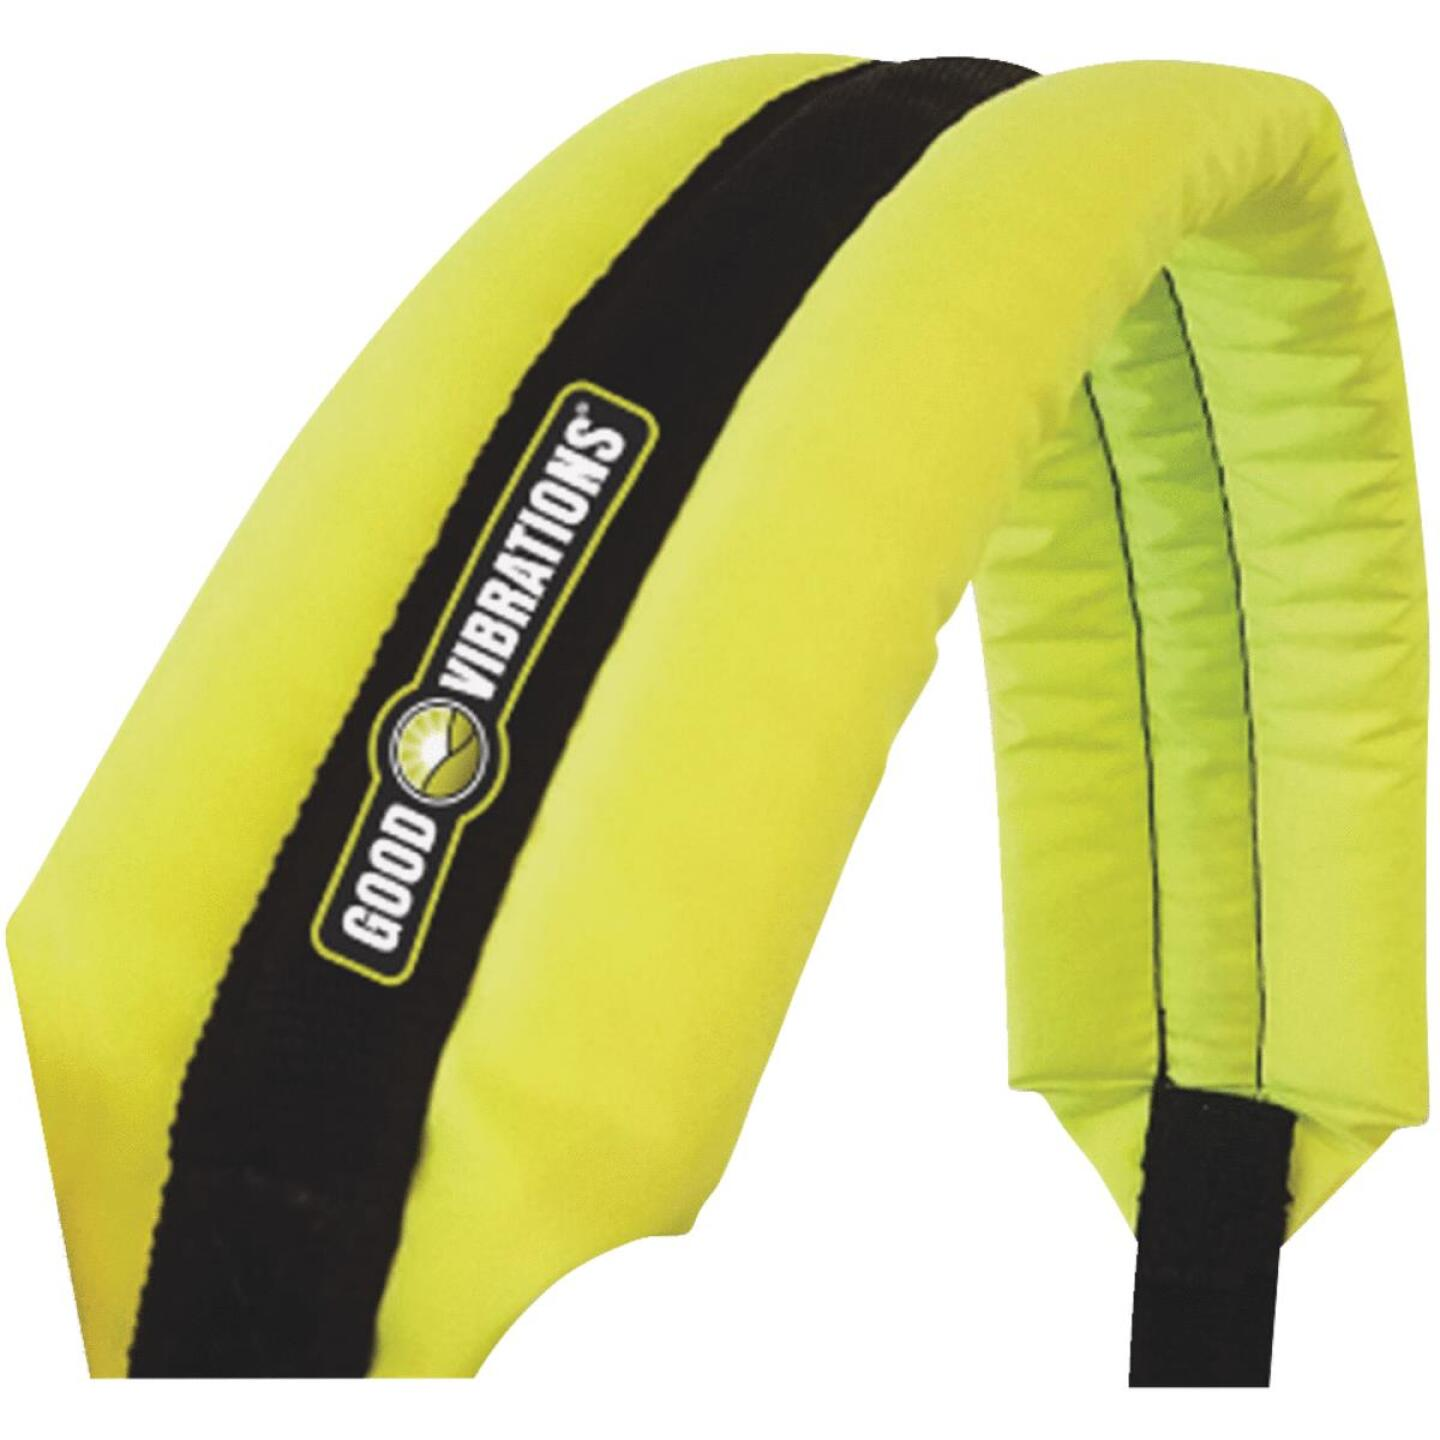 Good Vibrations Weight Absorbing Trimmer Strap Image 5